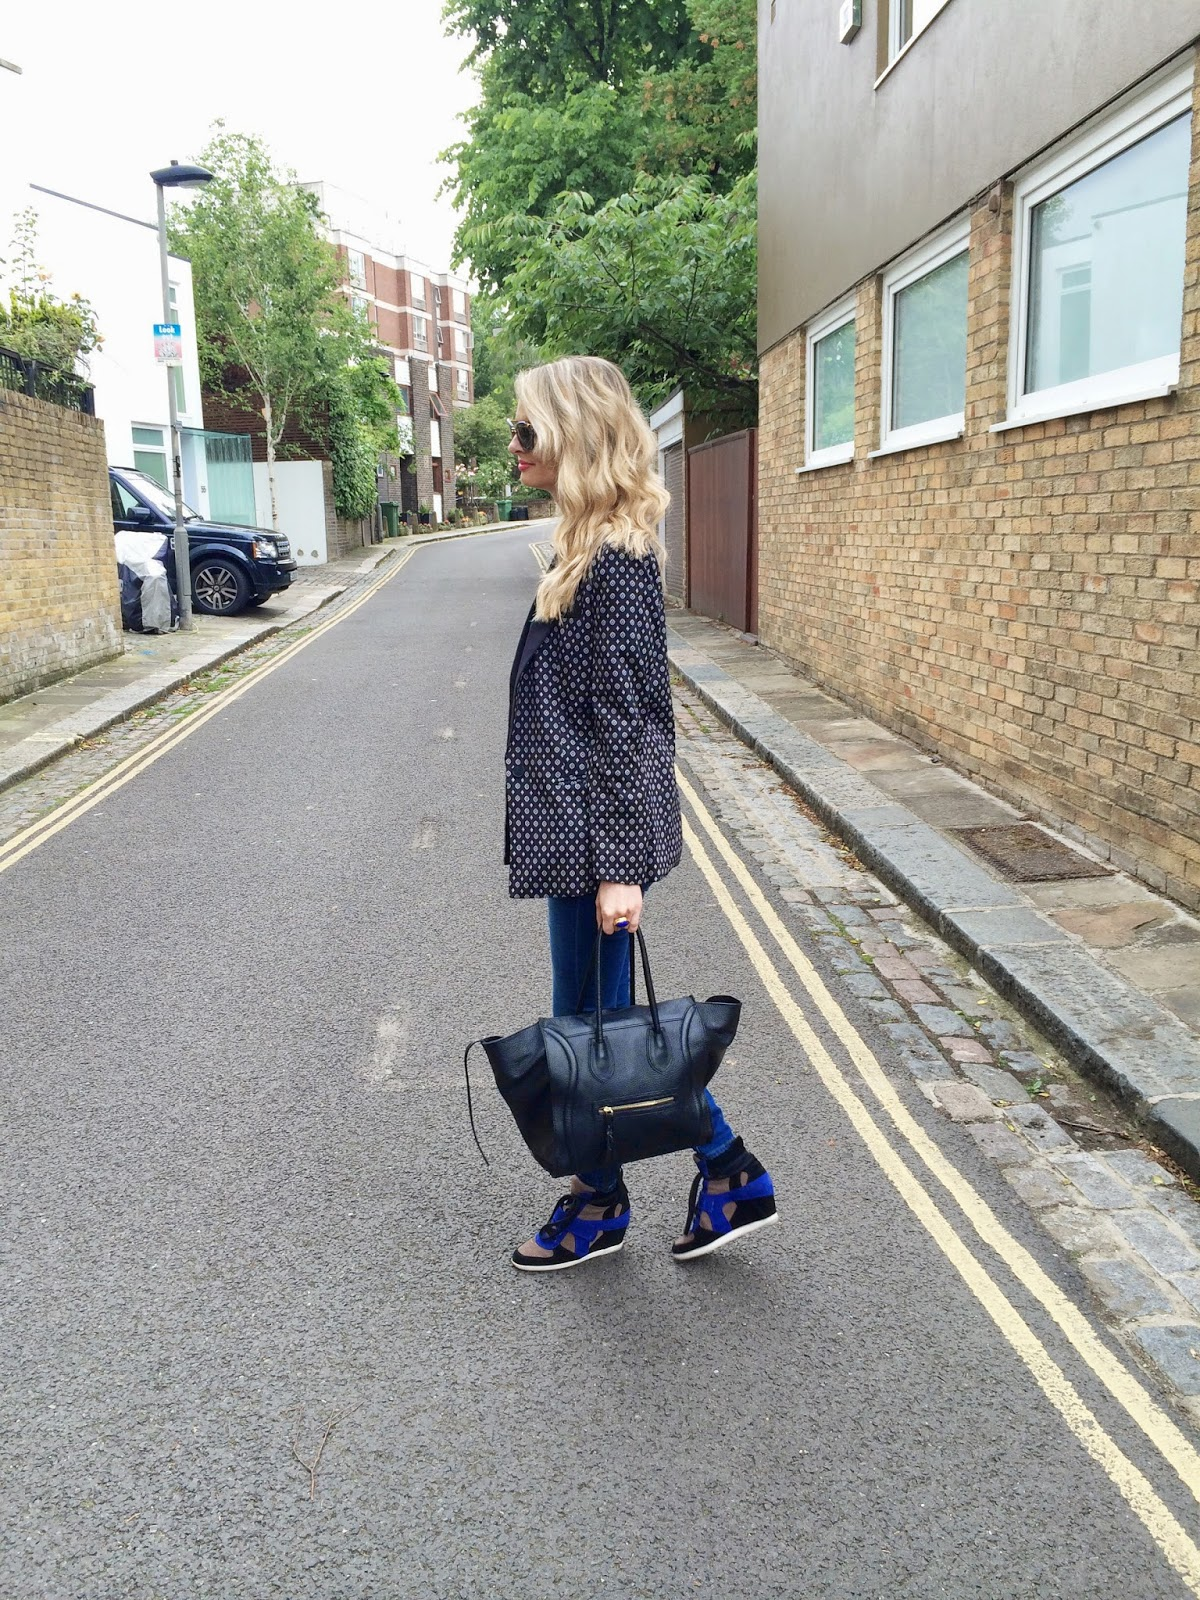 street style, fashion blogger, look book, street style london, mango blazer, printed blazer, asos, asos blazer, boyfriend blazer, ridley jeans, ash trainers, ash shoes, ash wedge trainers, celine bag, celine look a like bag, celine style bag